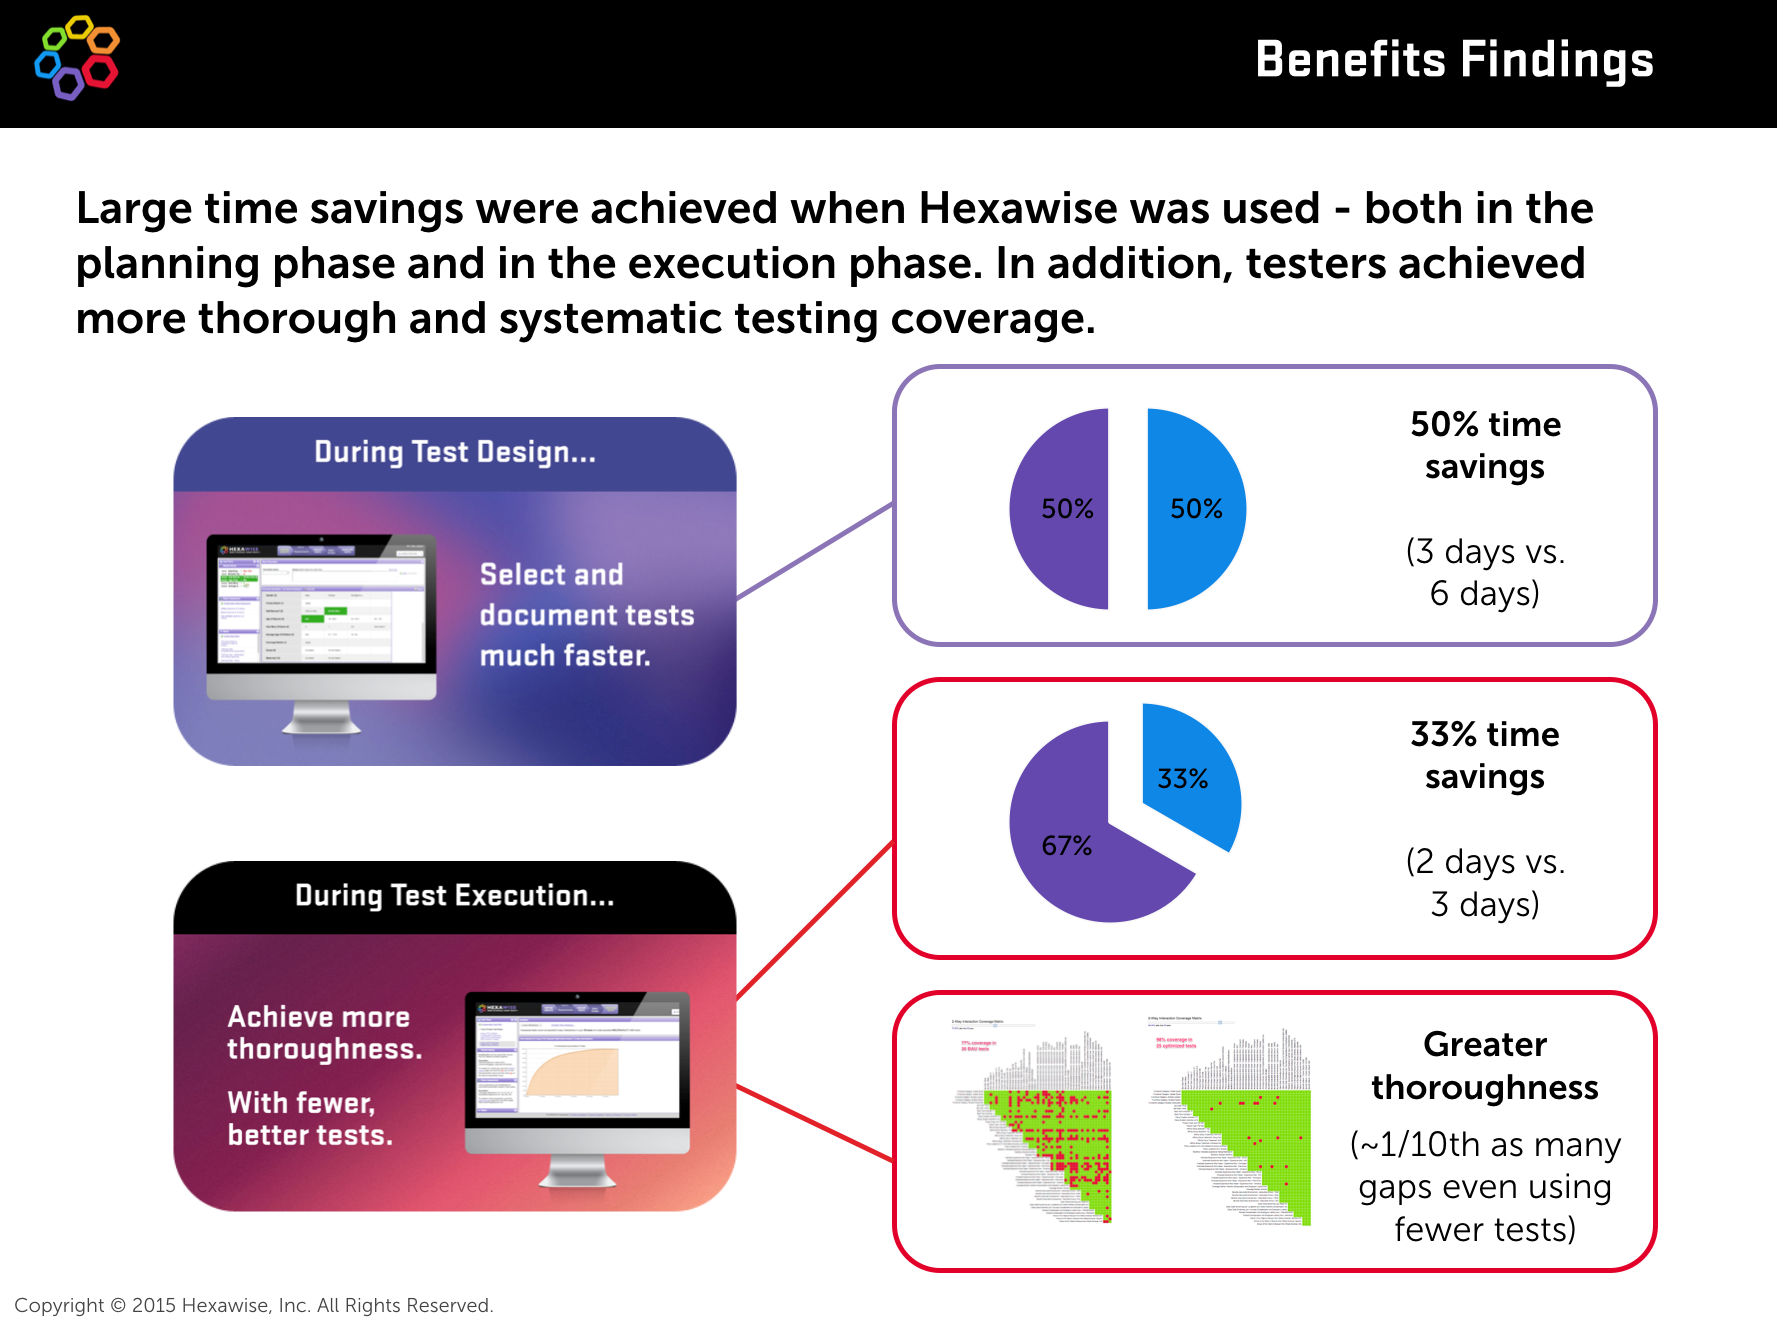 Hexawise - Benefits Measurement Results - The Hartford - 2015 10 14 (1)